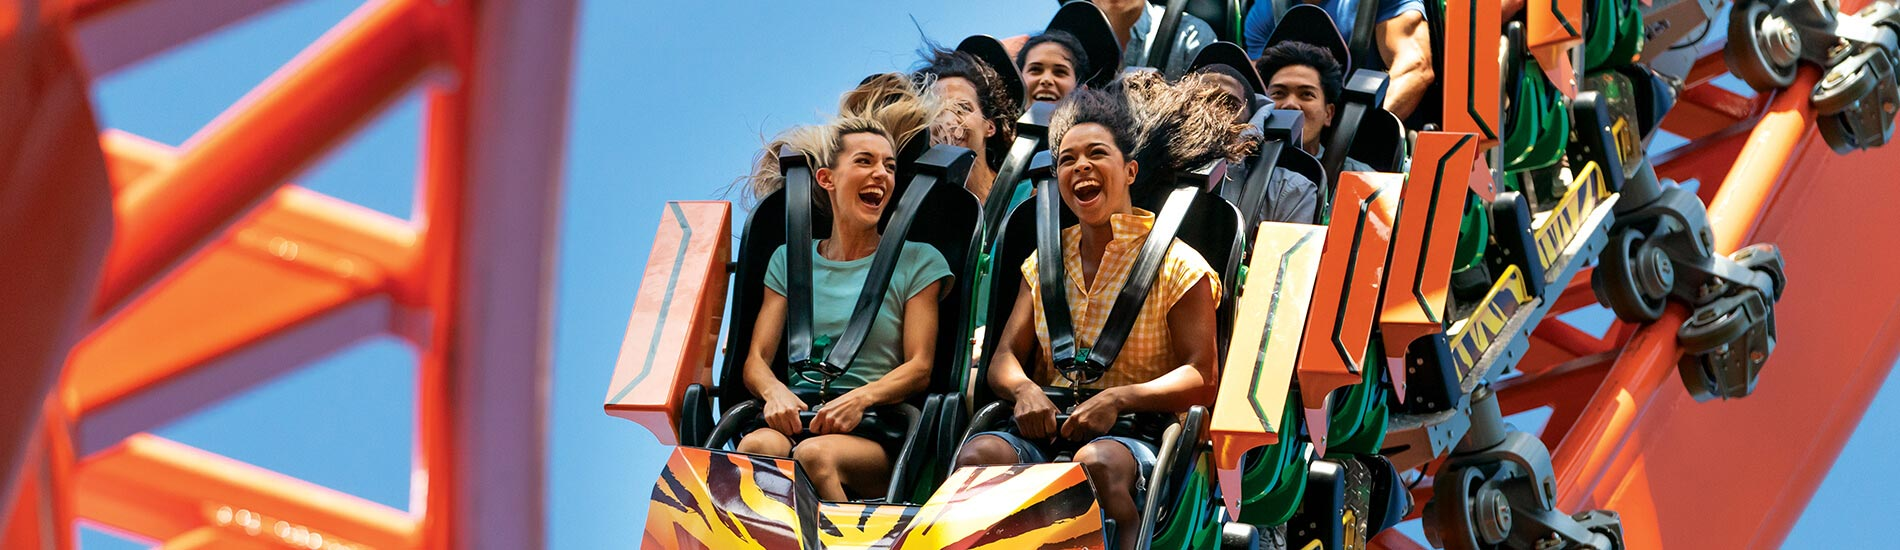 Busch Gardens Tampa Bay brings a new level of excitement with FLORIDA'S TALLEST LAUNCH COASTER.